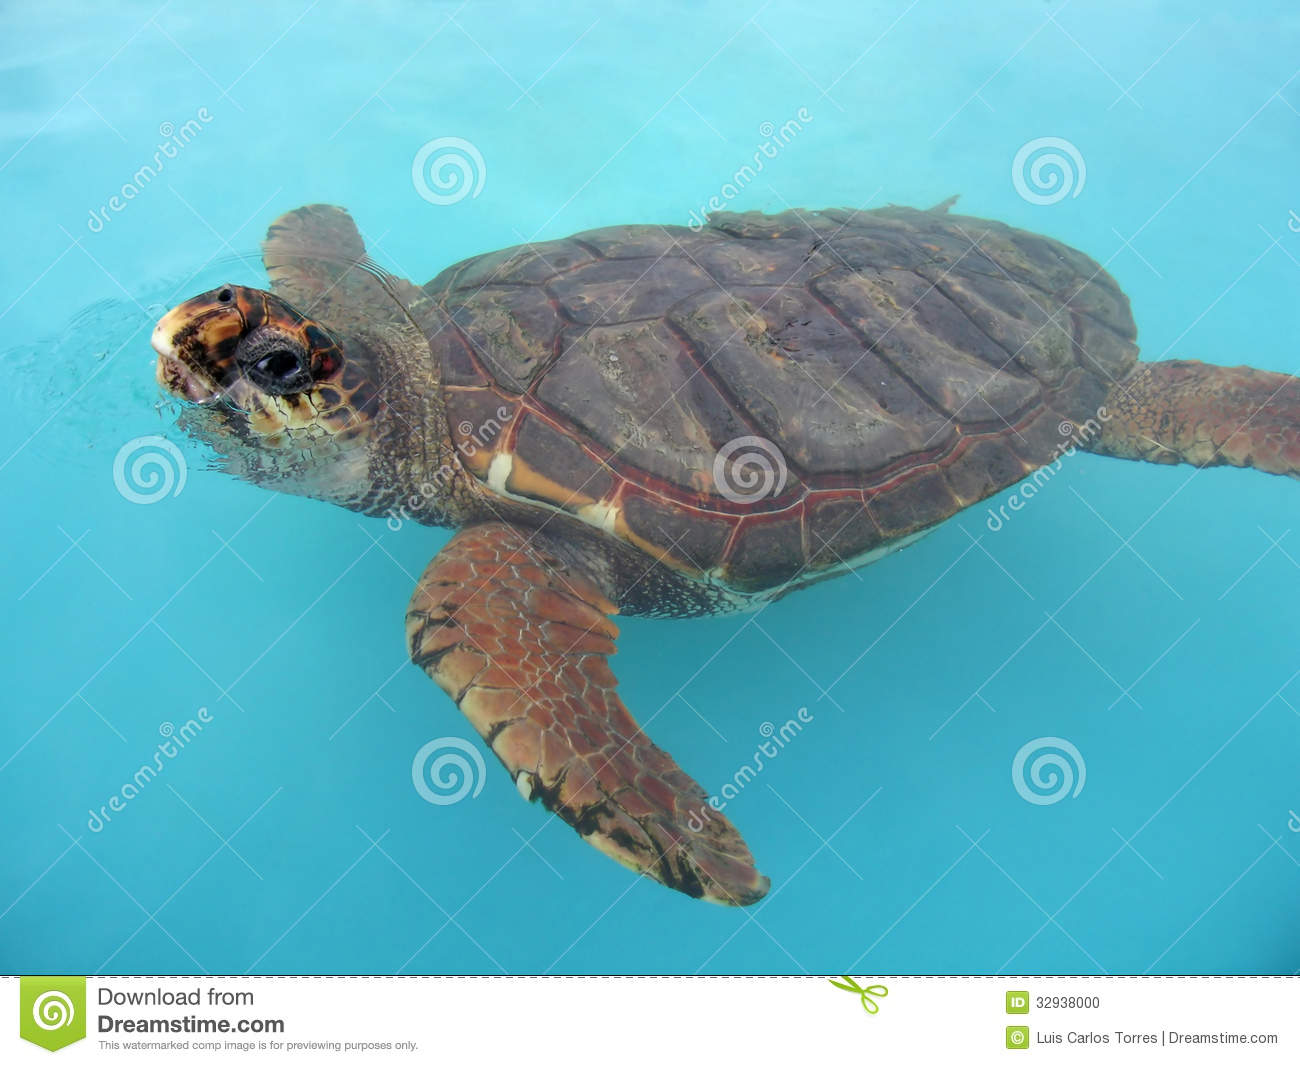 Aquatic turtle swimming on clean water.